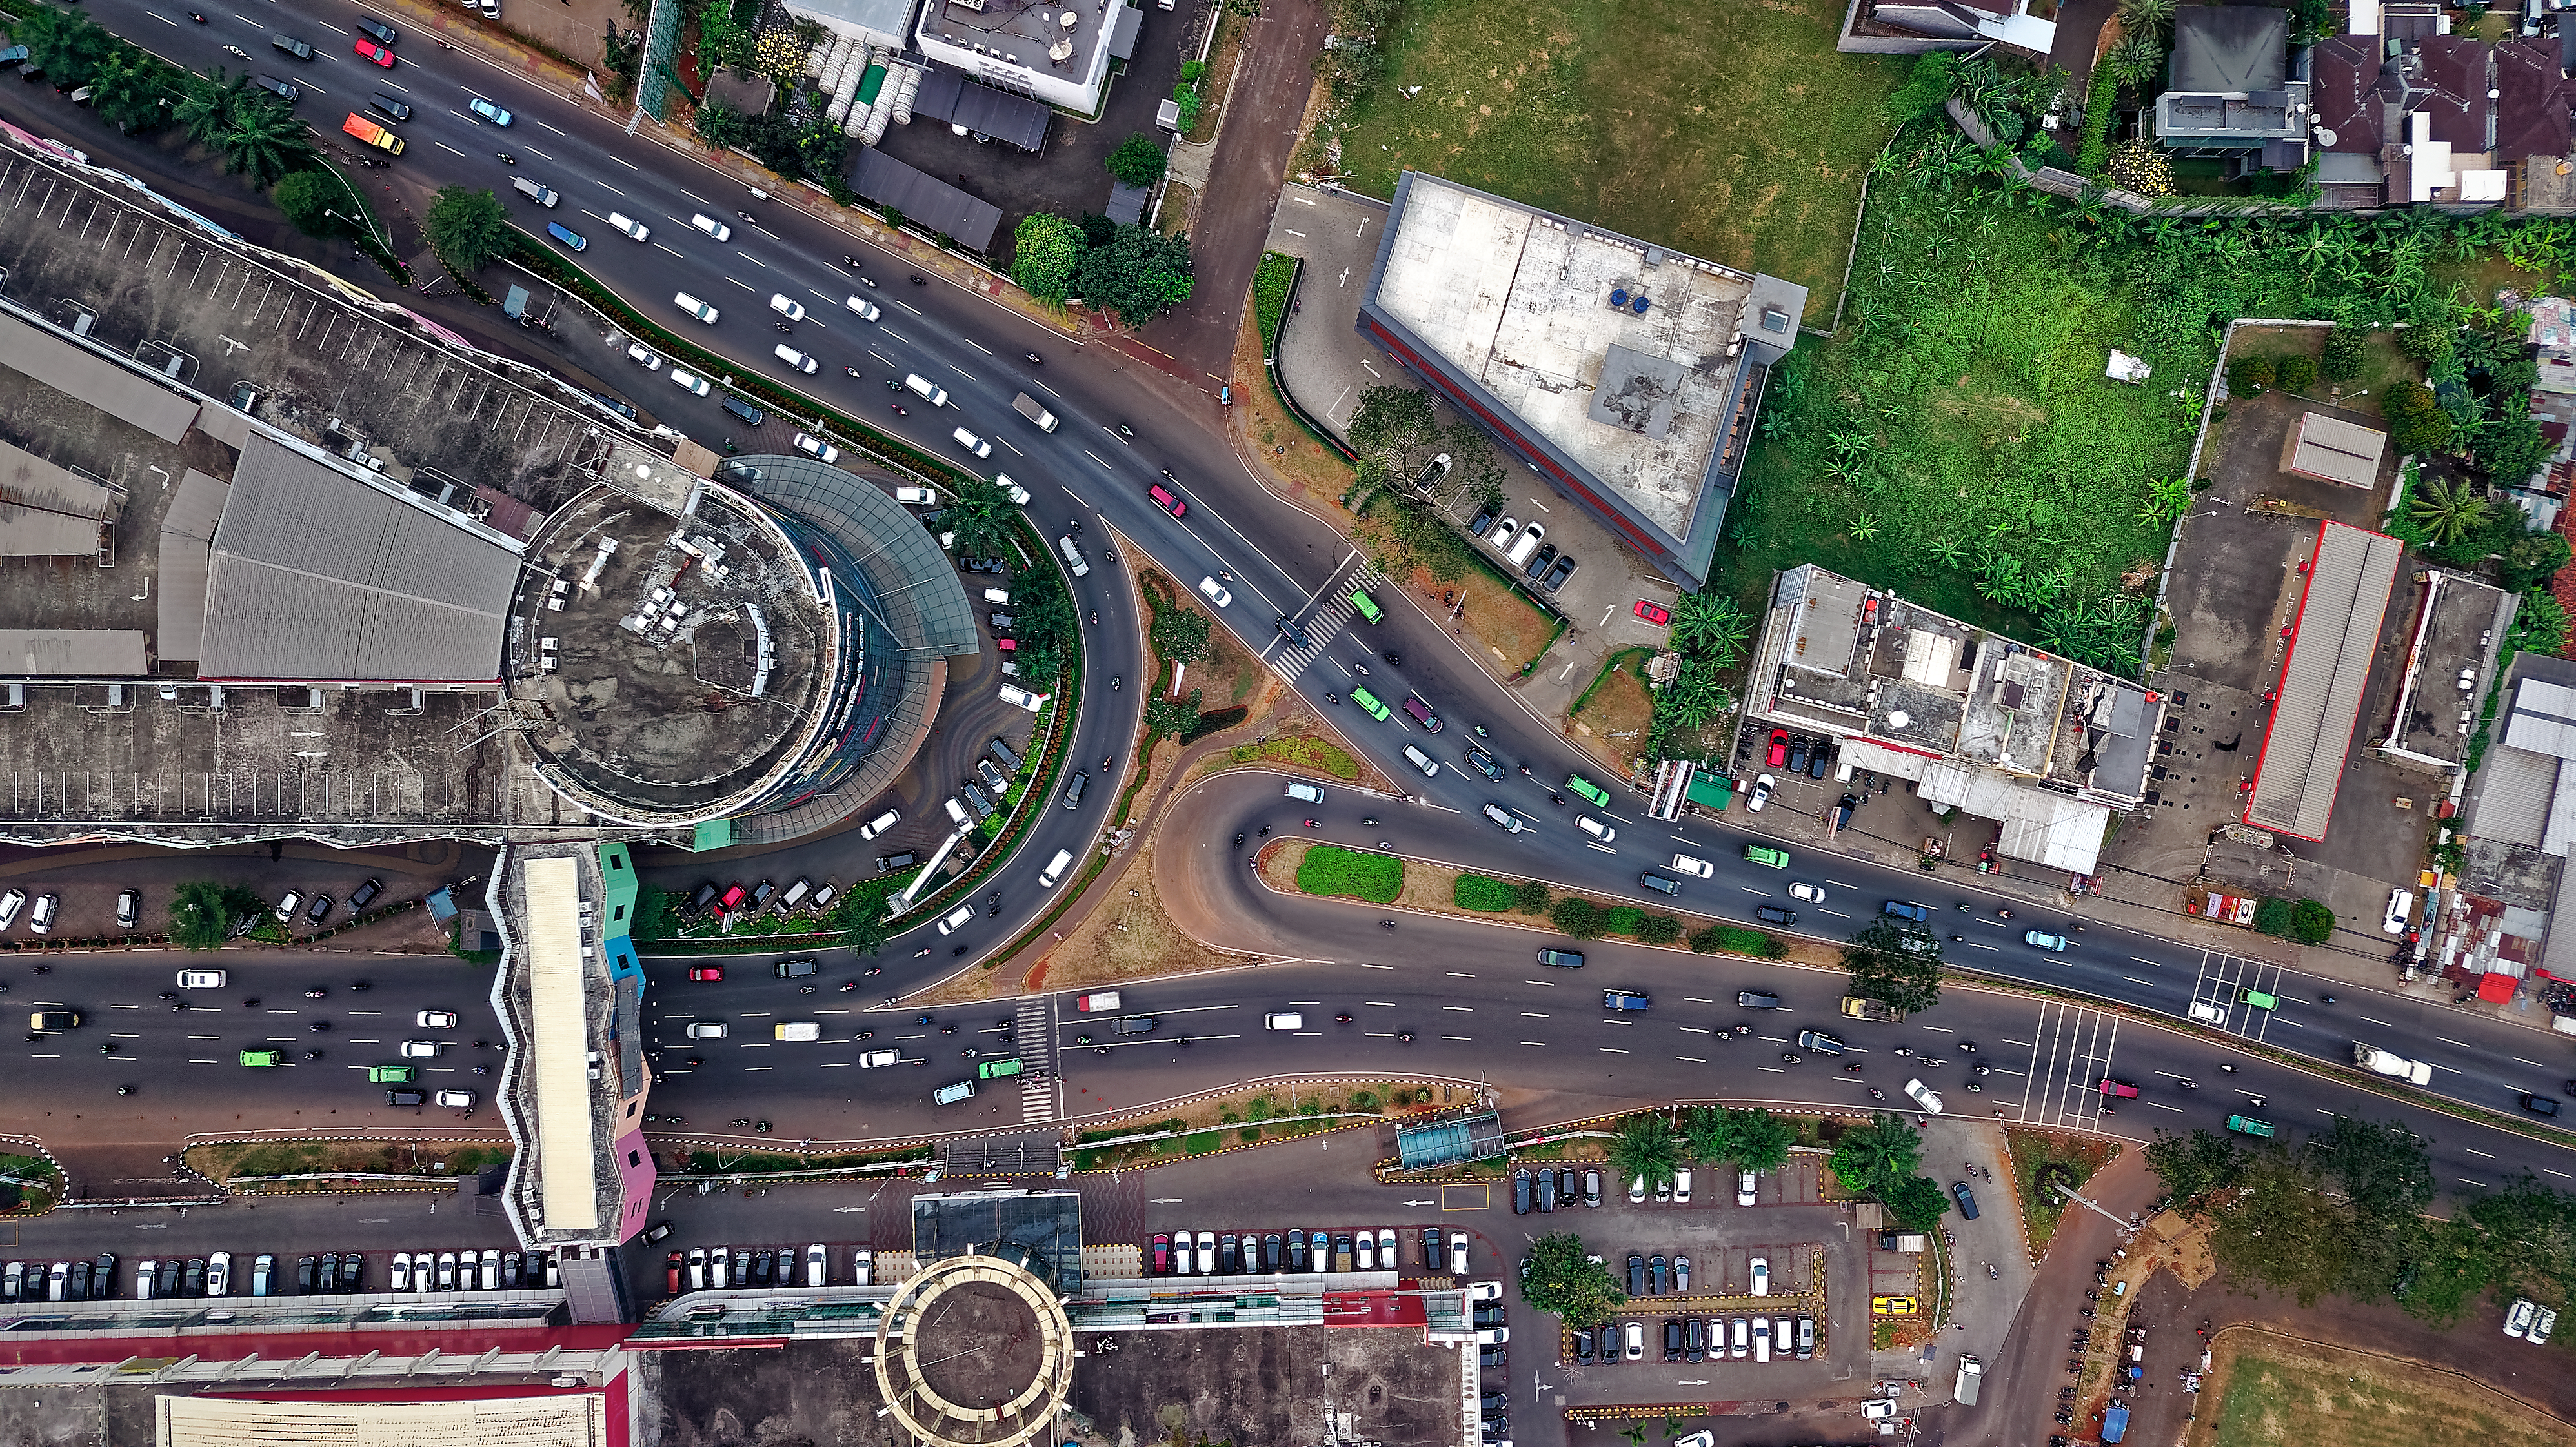 Aerial View of Road With Cars